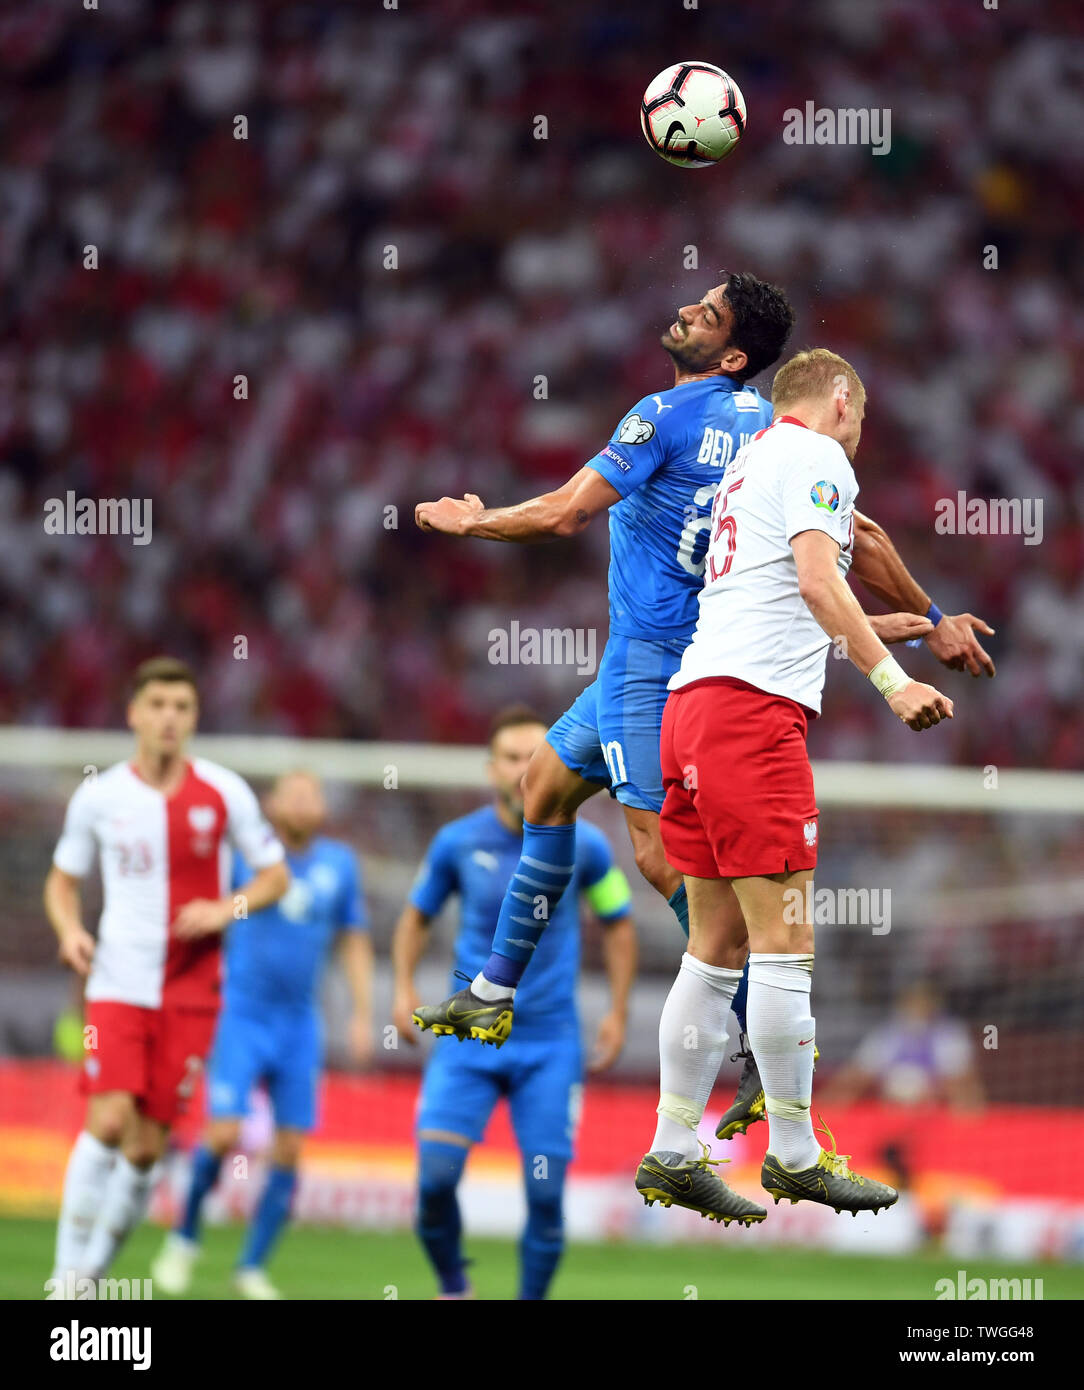 Warsaw, Poland, June 10, 2019: EURO 2020 qualifing round, group stage, Poland wins 4:0 with Izarel on PGE Narodowy. Omri Ben Harush (Izrael) - Stock Image